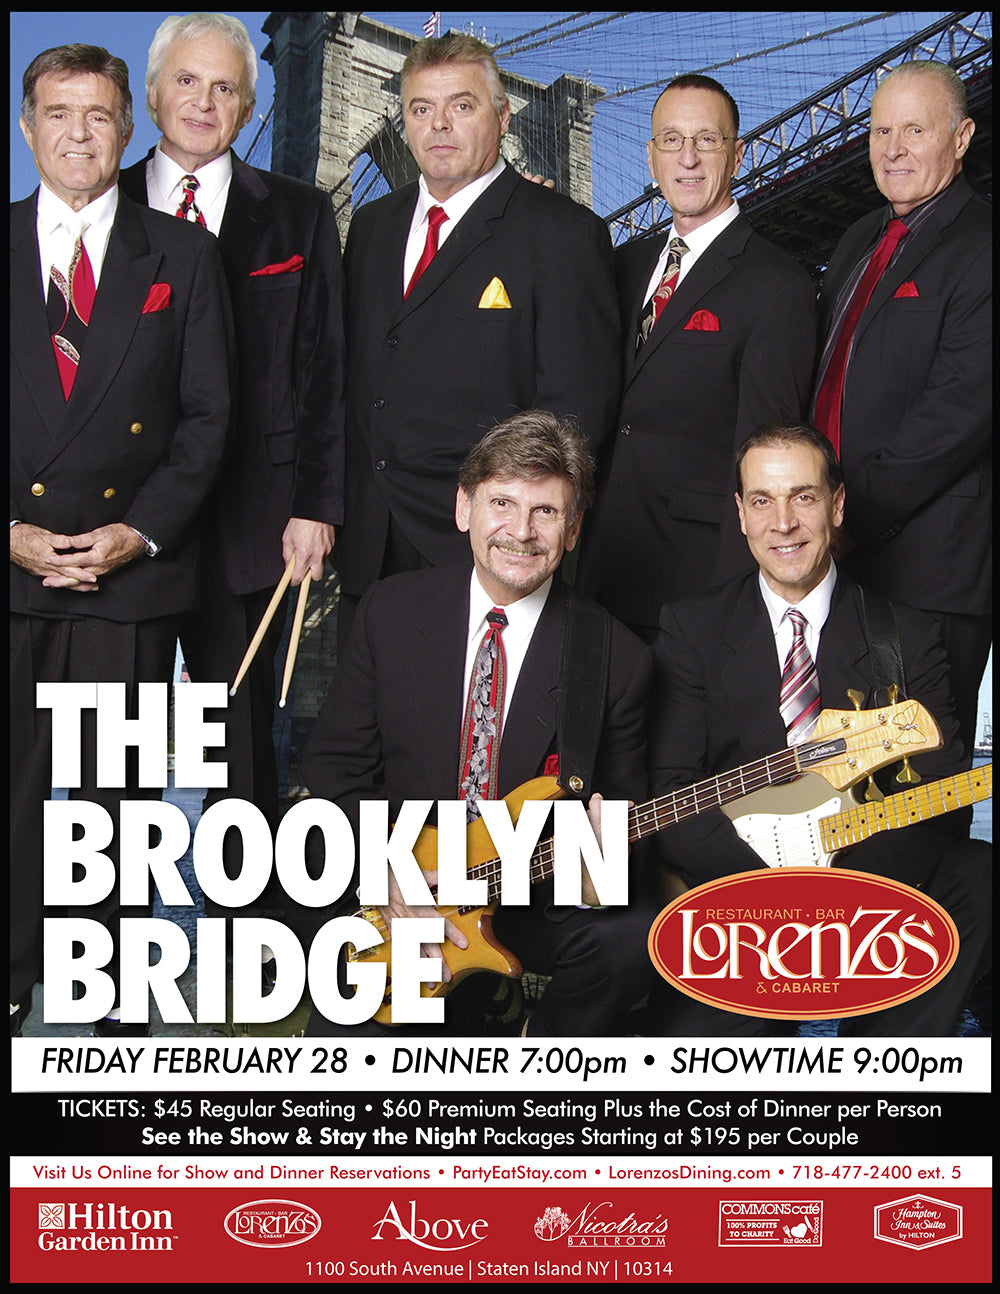 The Brooklyn Bridge - Friday, February 28, 2020